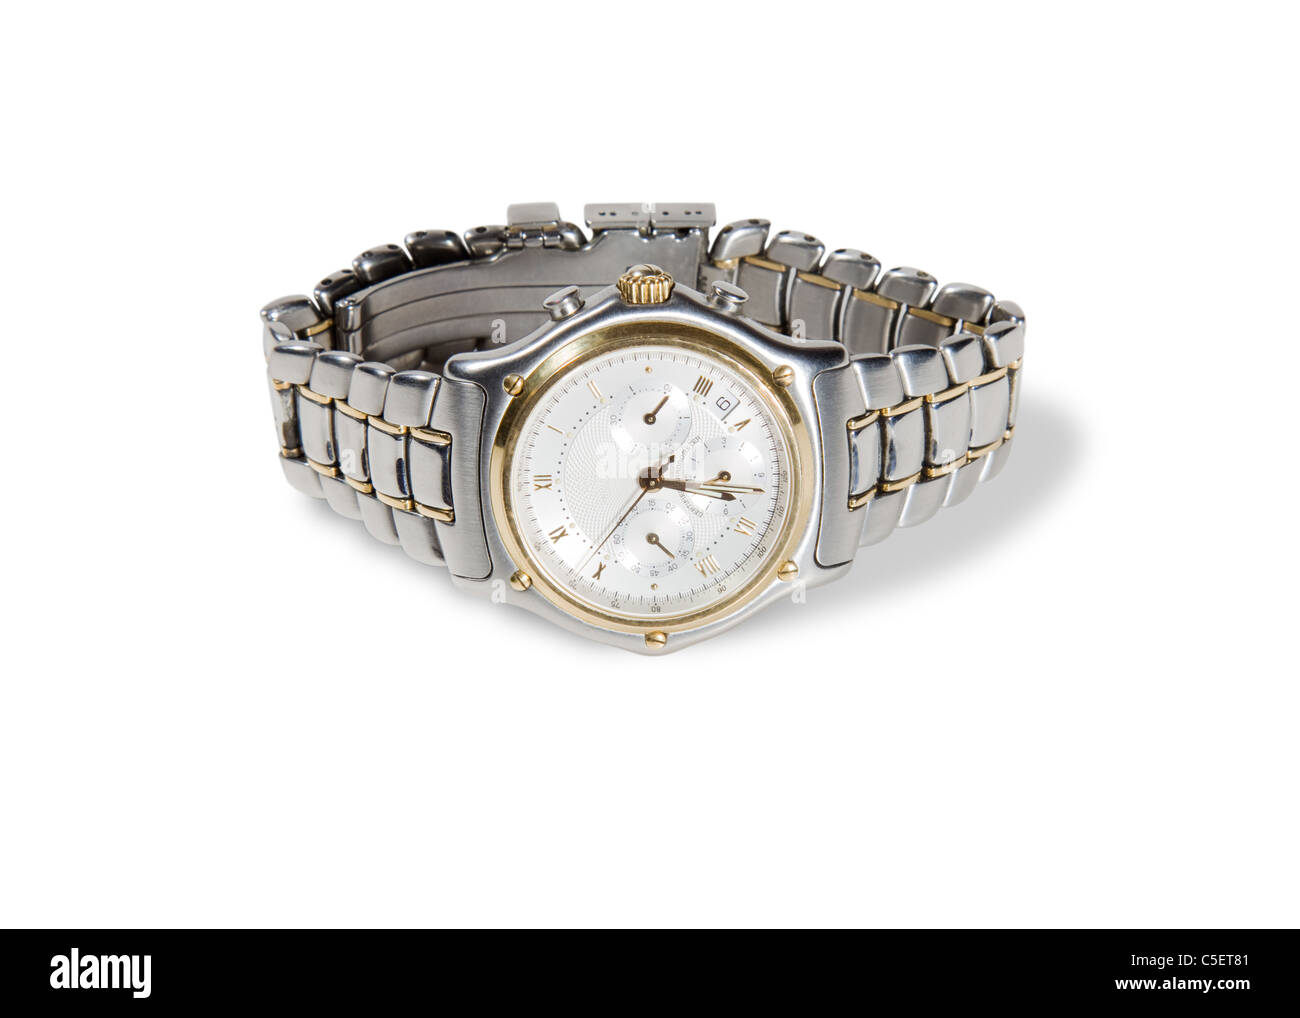 detailed shot of a mans chronograph watch - Stock Image